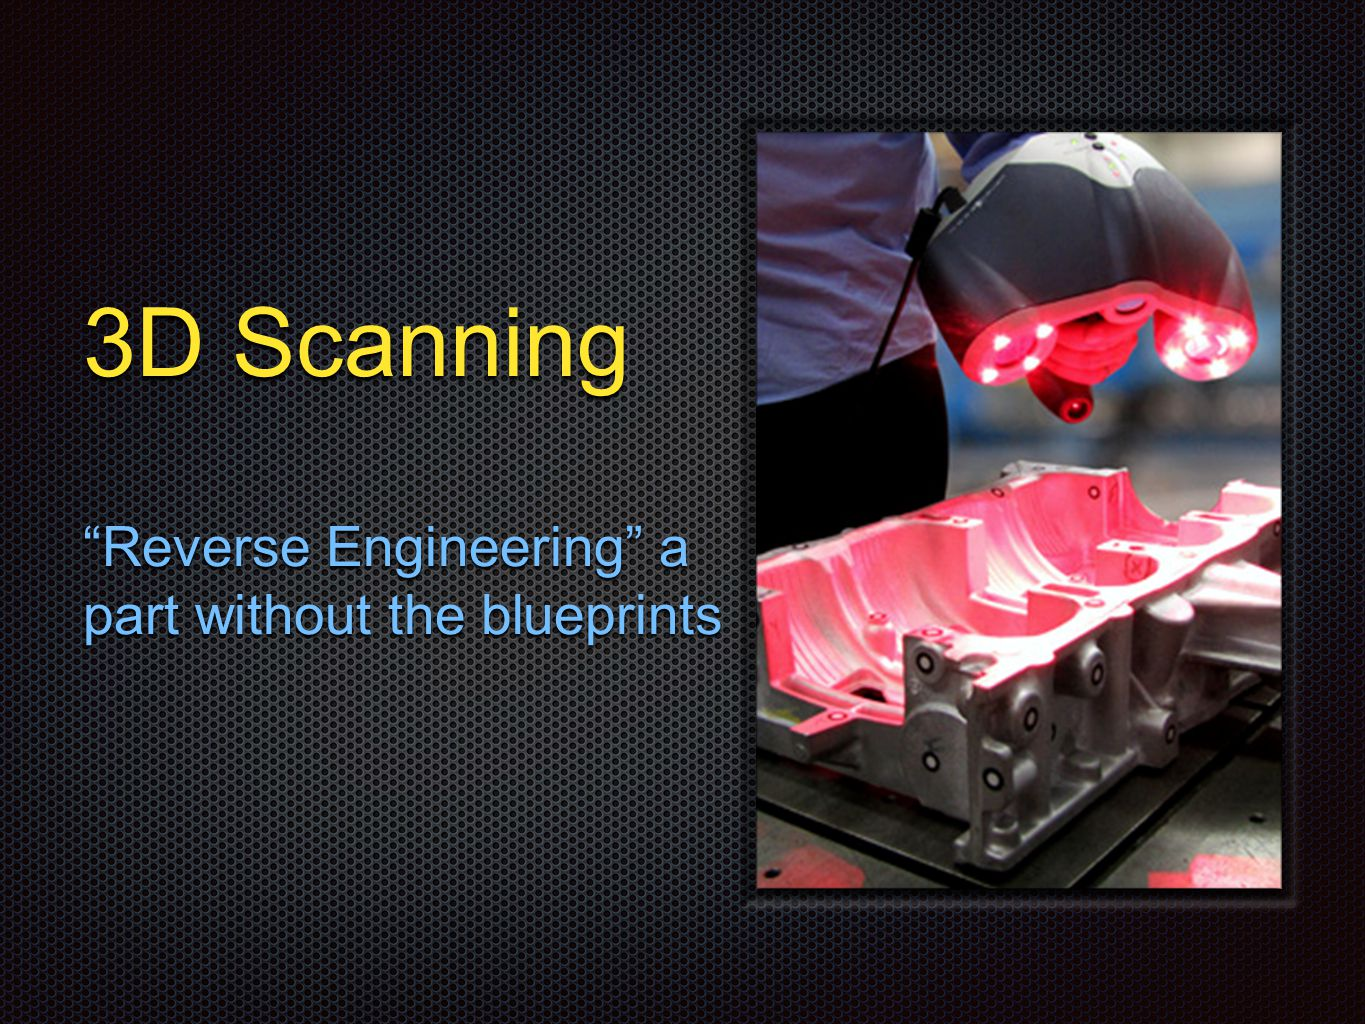 3D Scanning Reverse Engineering a part without the blueprints